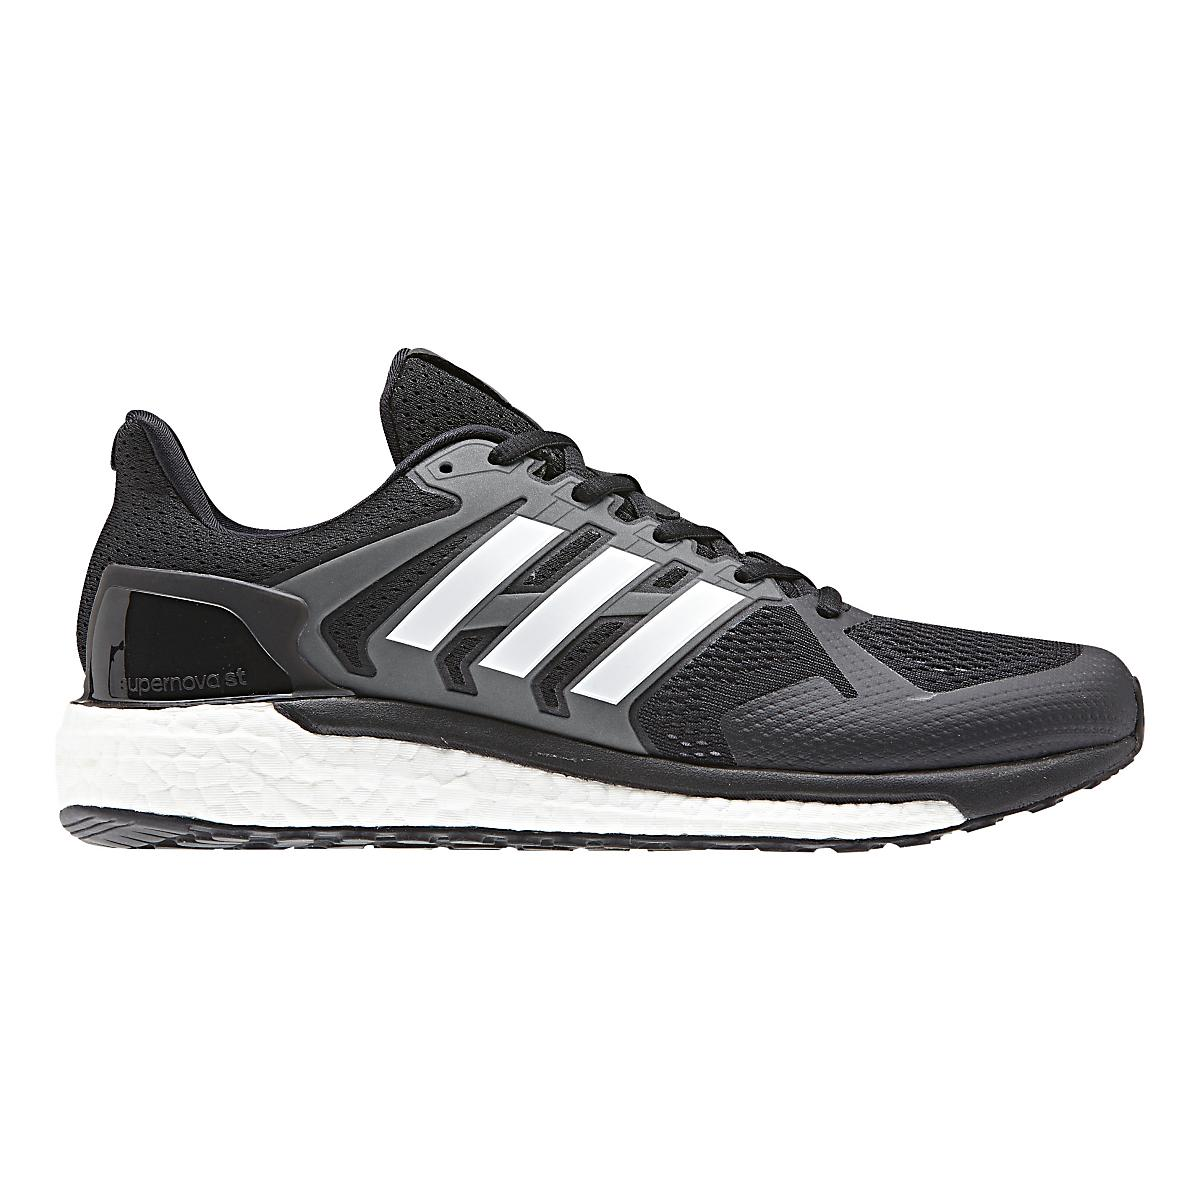 new product d3af8 f25f2 Mens adidas Supernova ST Running Shoe at Road Runner Sports